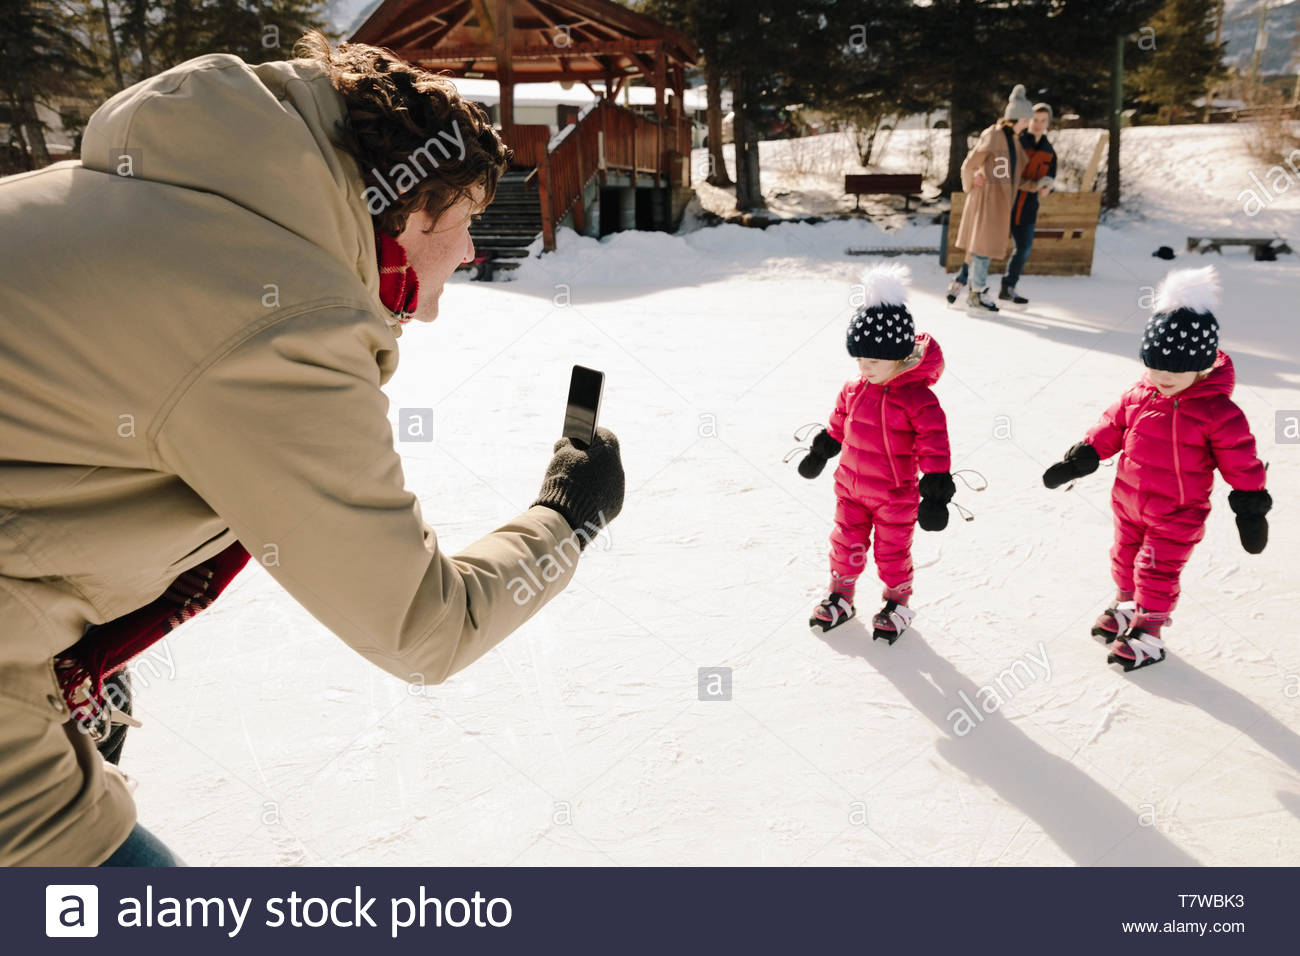 Father with camera phone filming toddler twin daughters ice skating on frozen pond - Stock Image